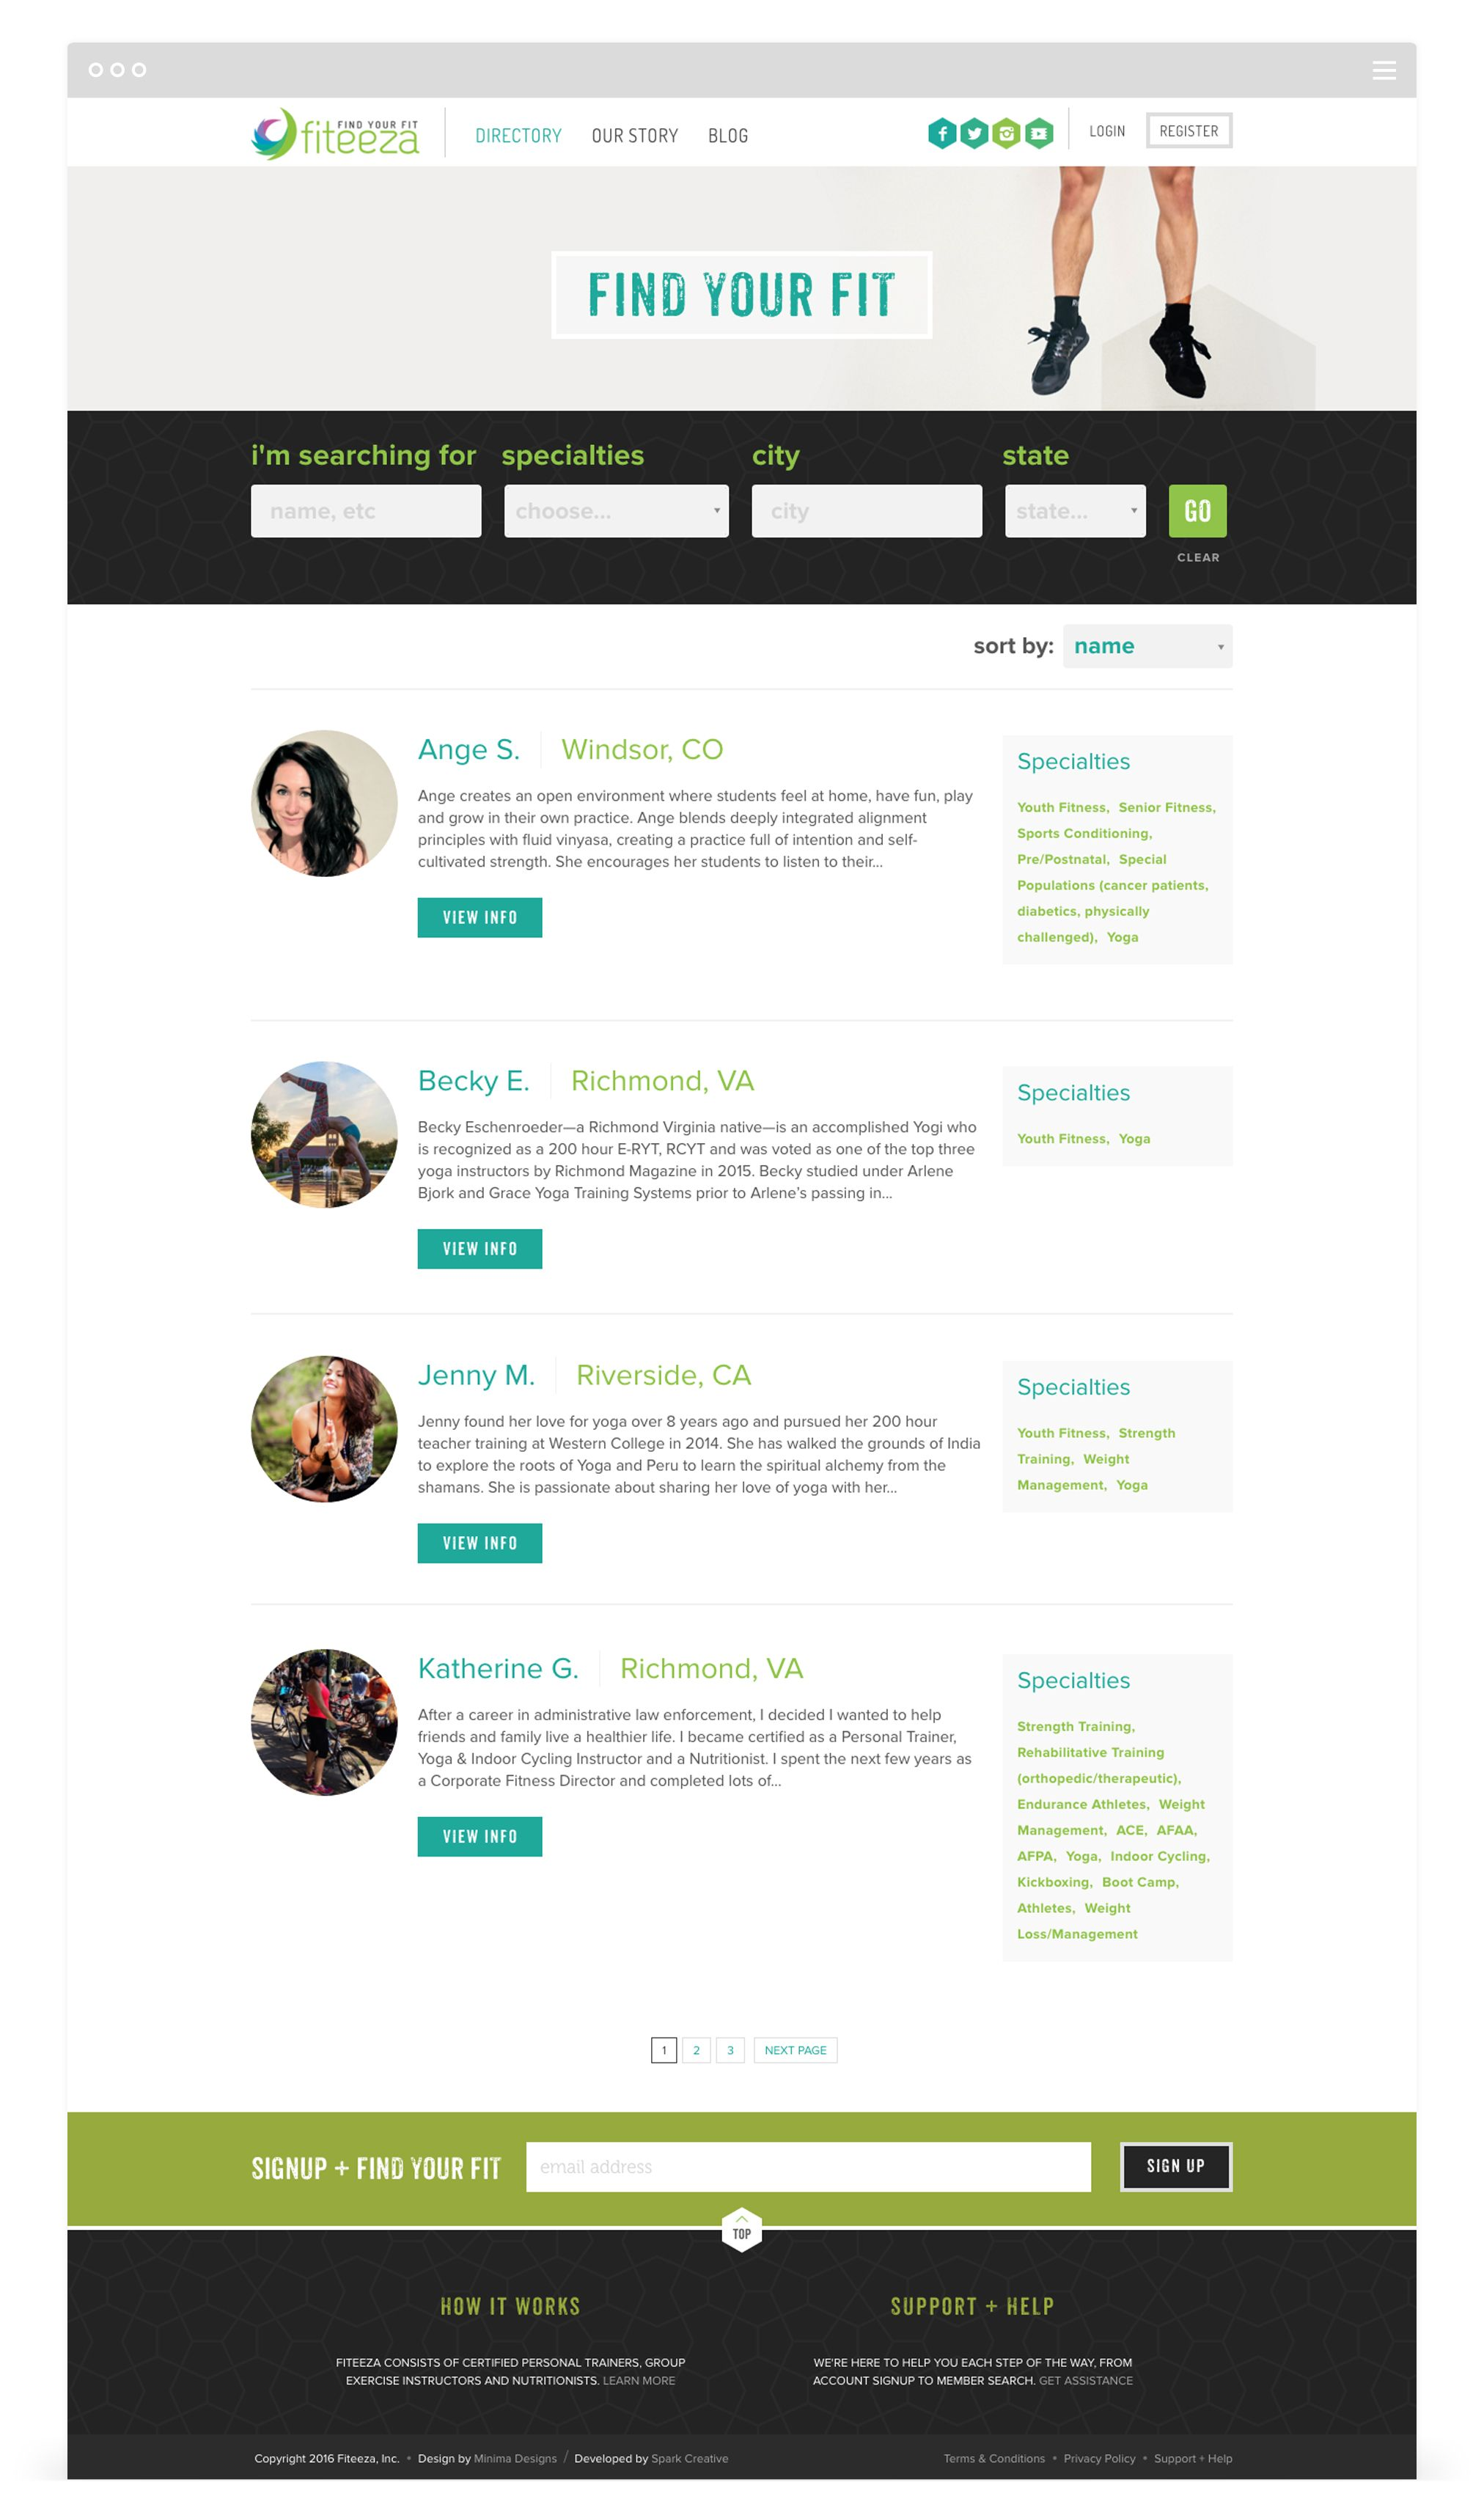 Website Development For Fiteeza By Second West With Images Website Development City State Finding Yourself